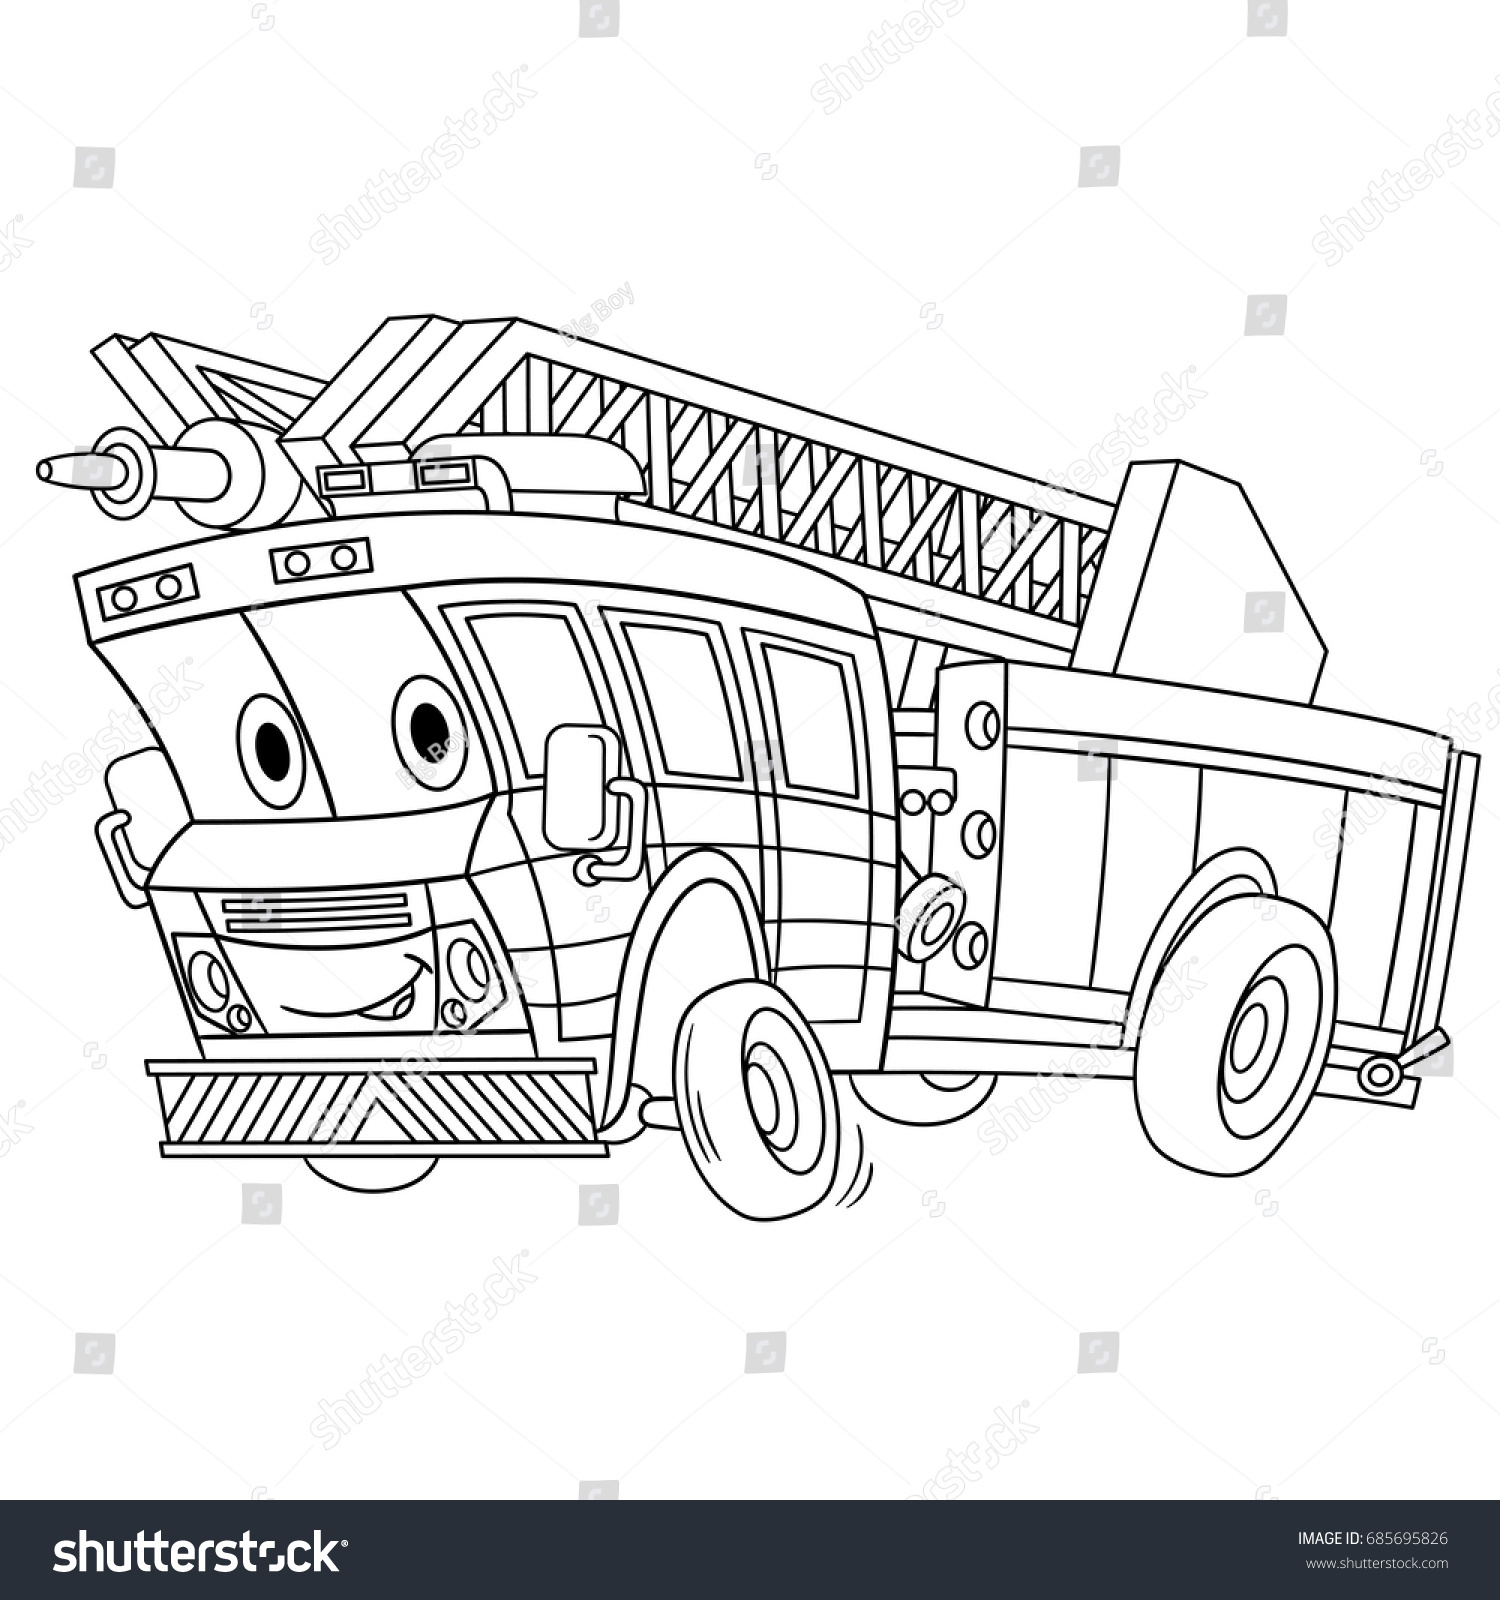 Coloring Page Cartoon Fire Truck Emergency Stock Vector (Royalty ...